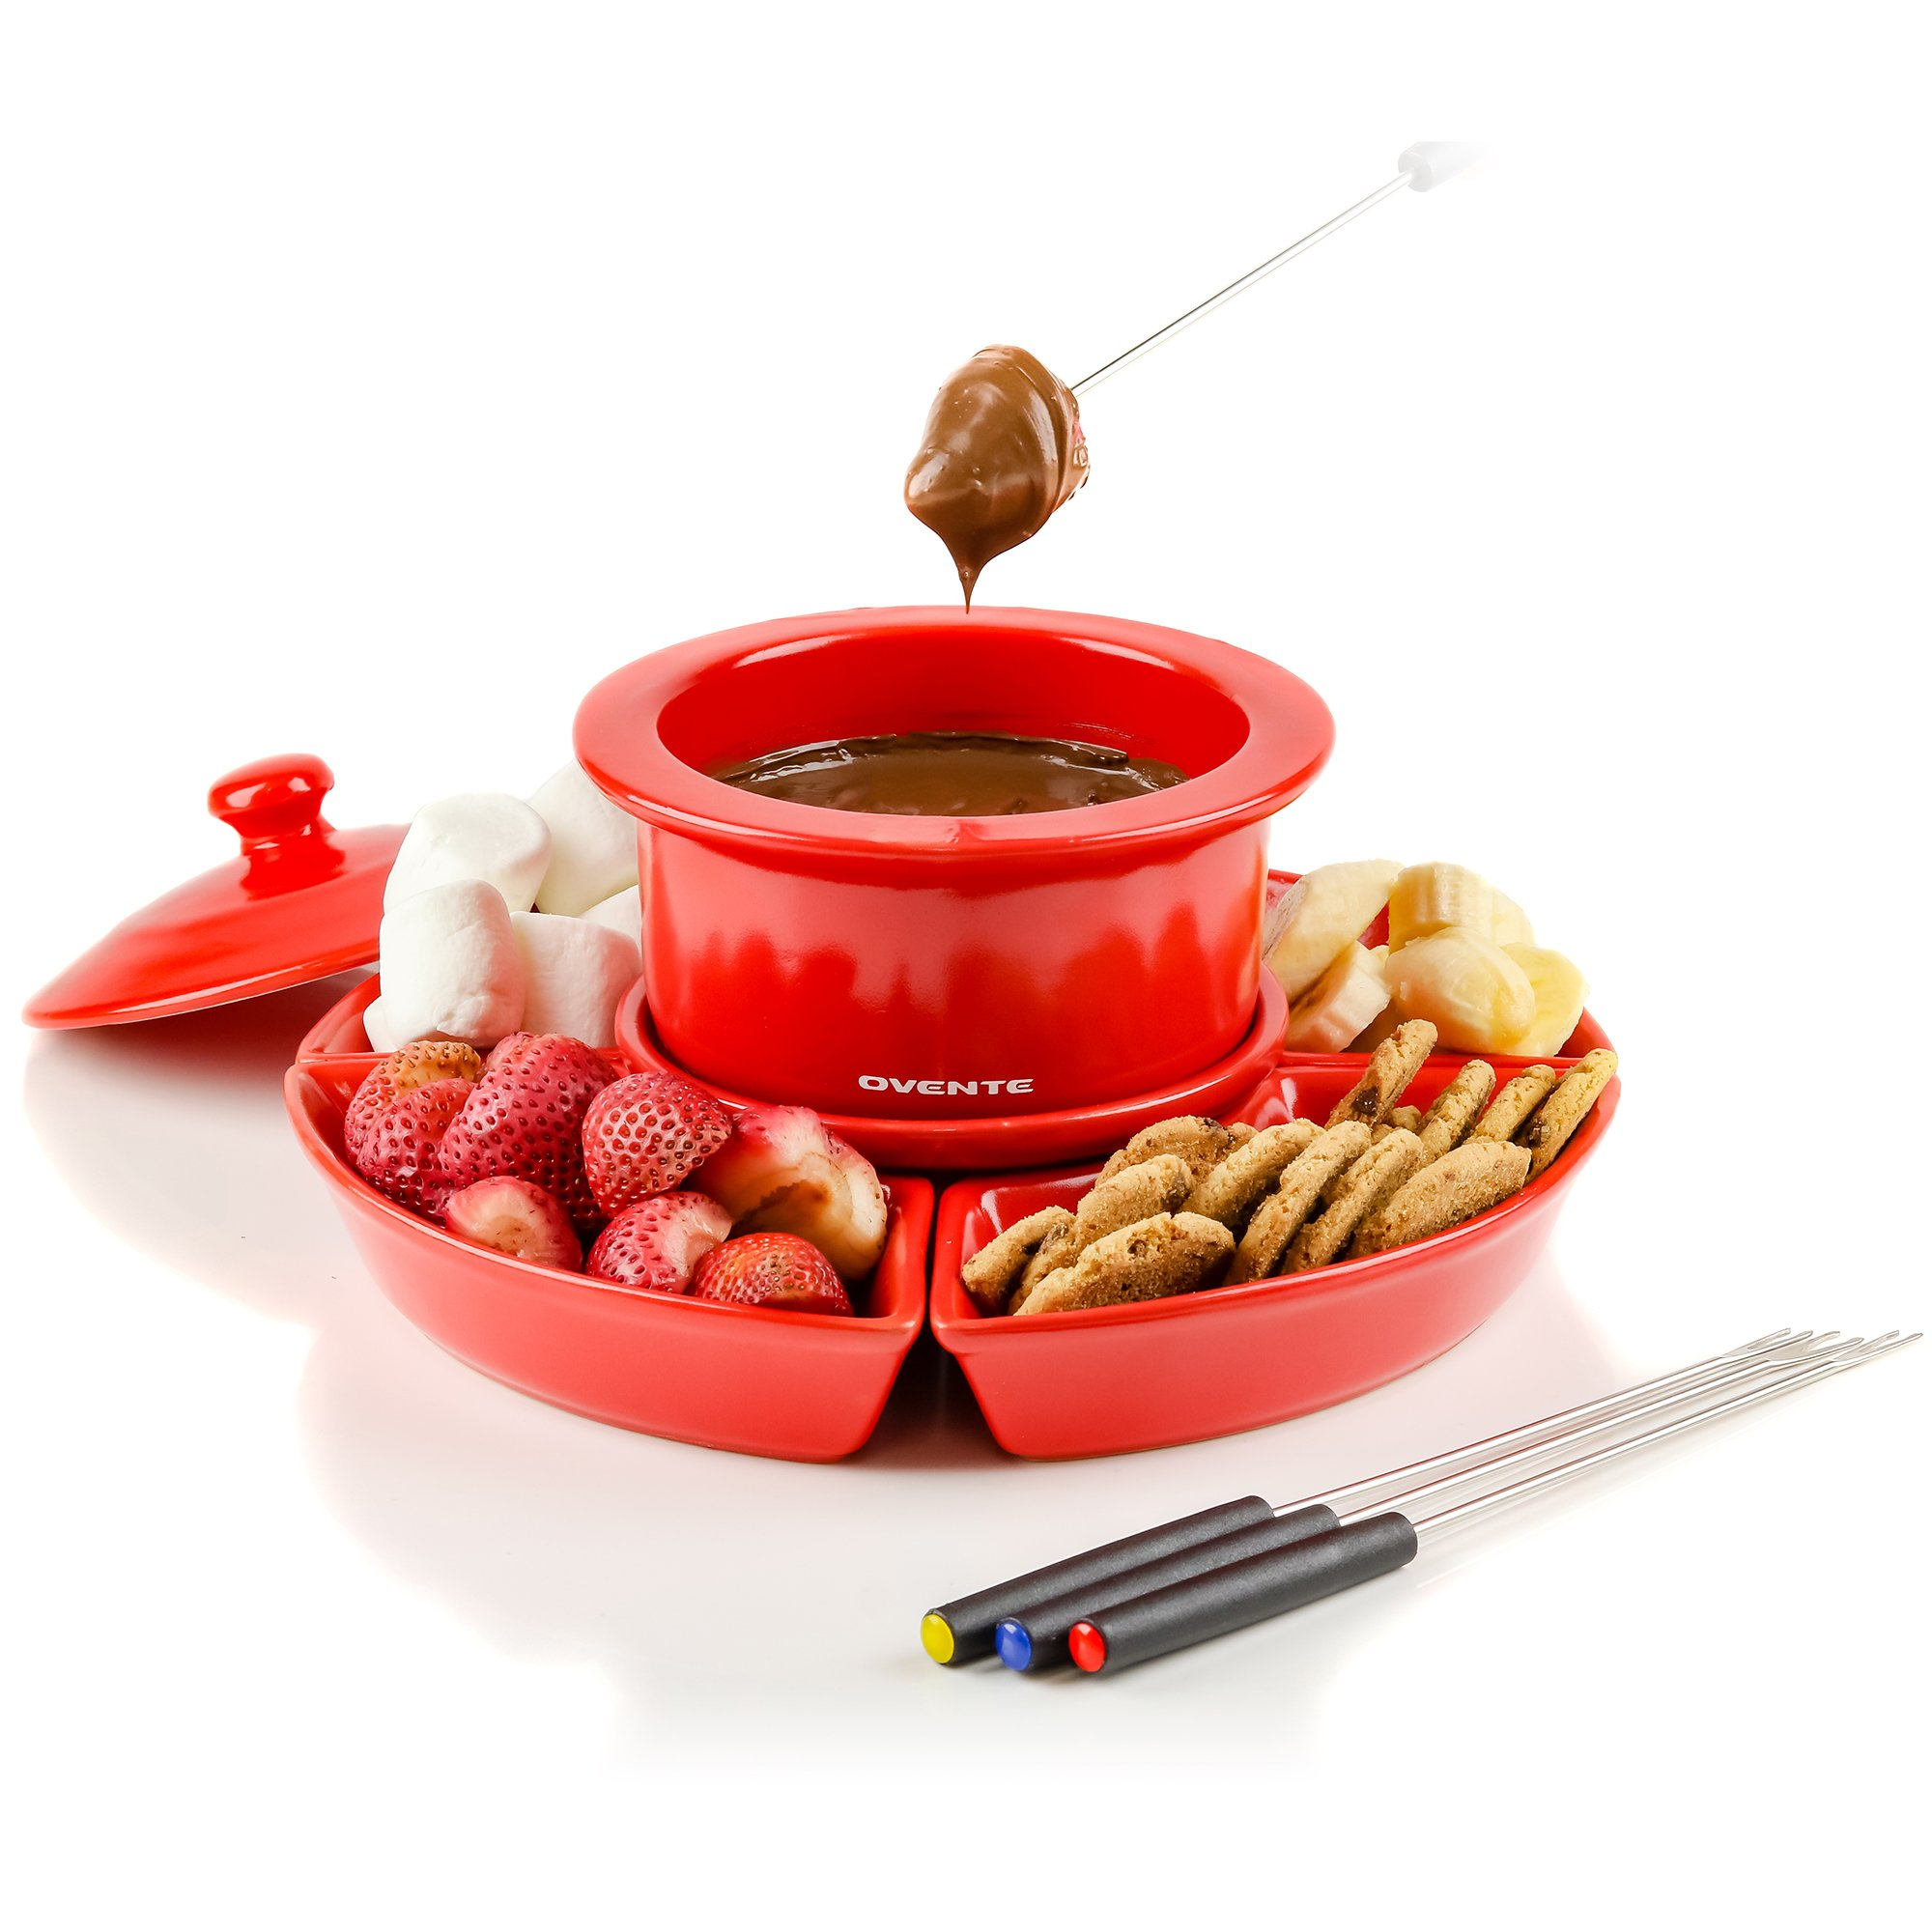 Ovente CFC317R Electric Cheese/Chocolate Fondue Melting Pots and Warmer Set, 1 Liter